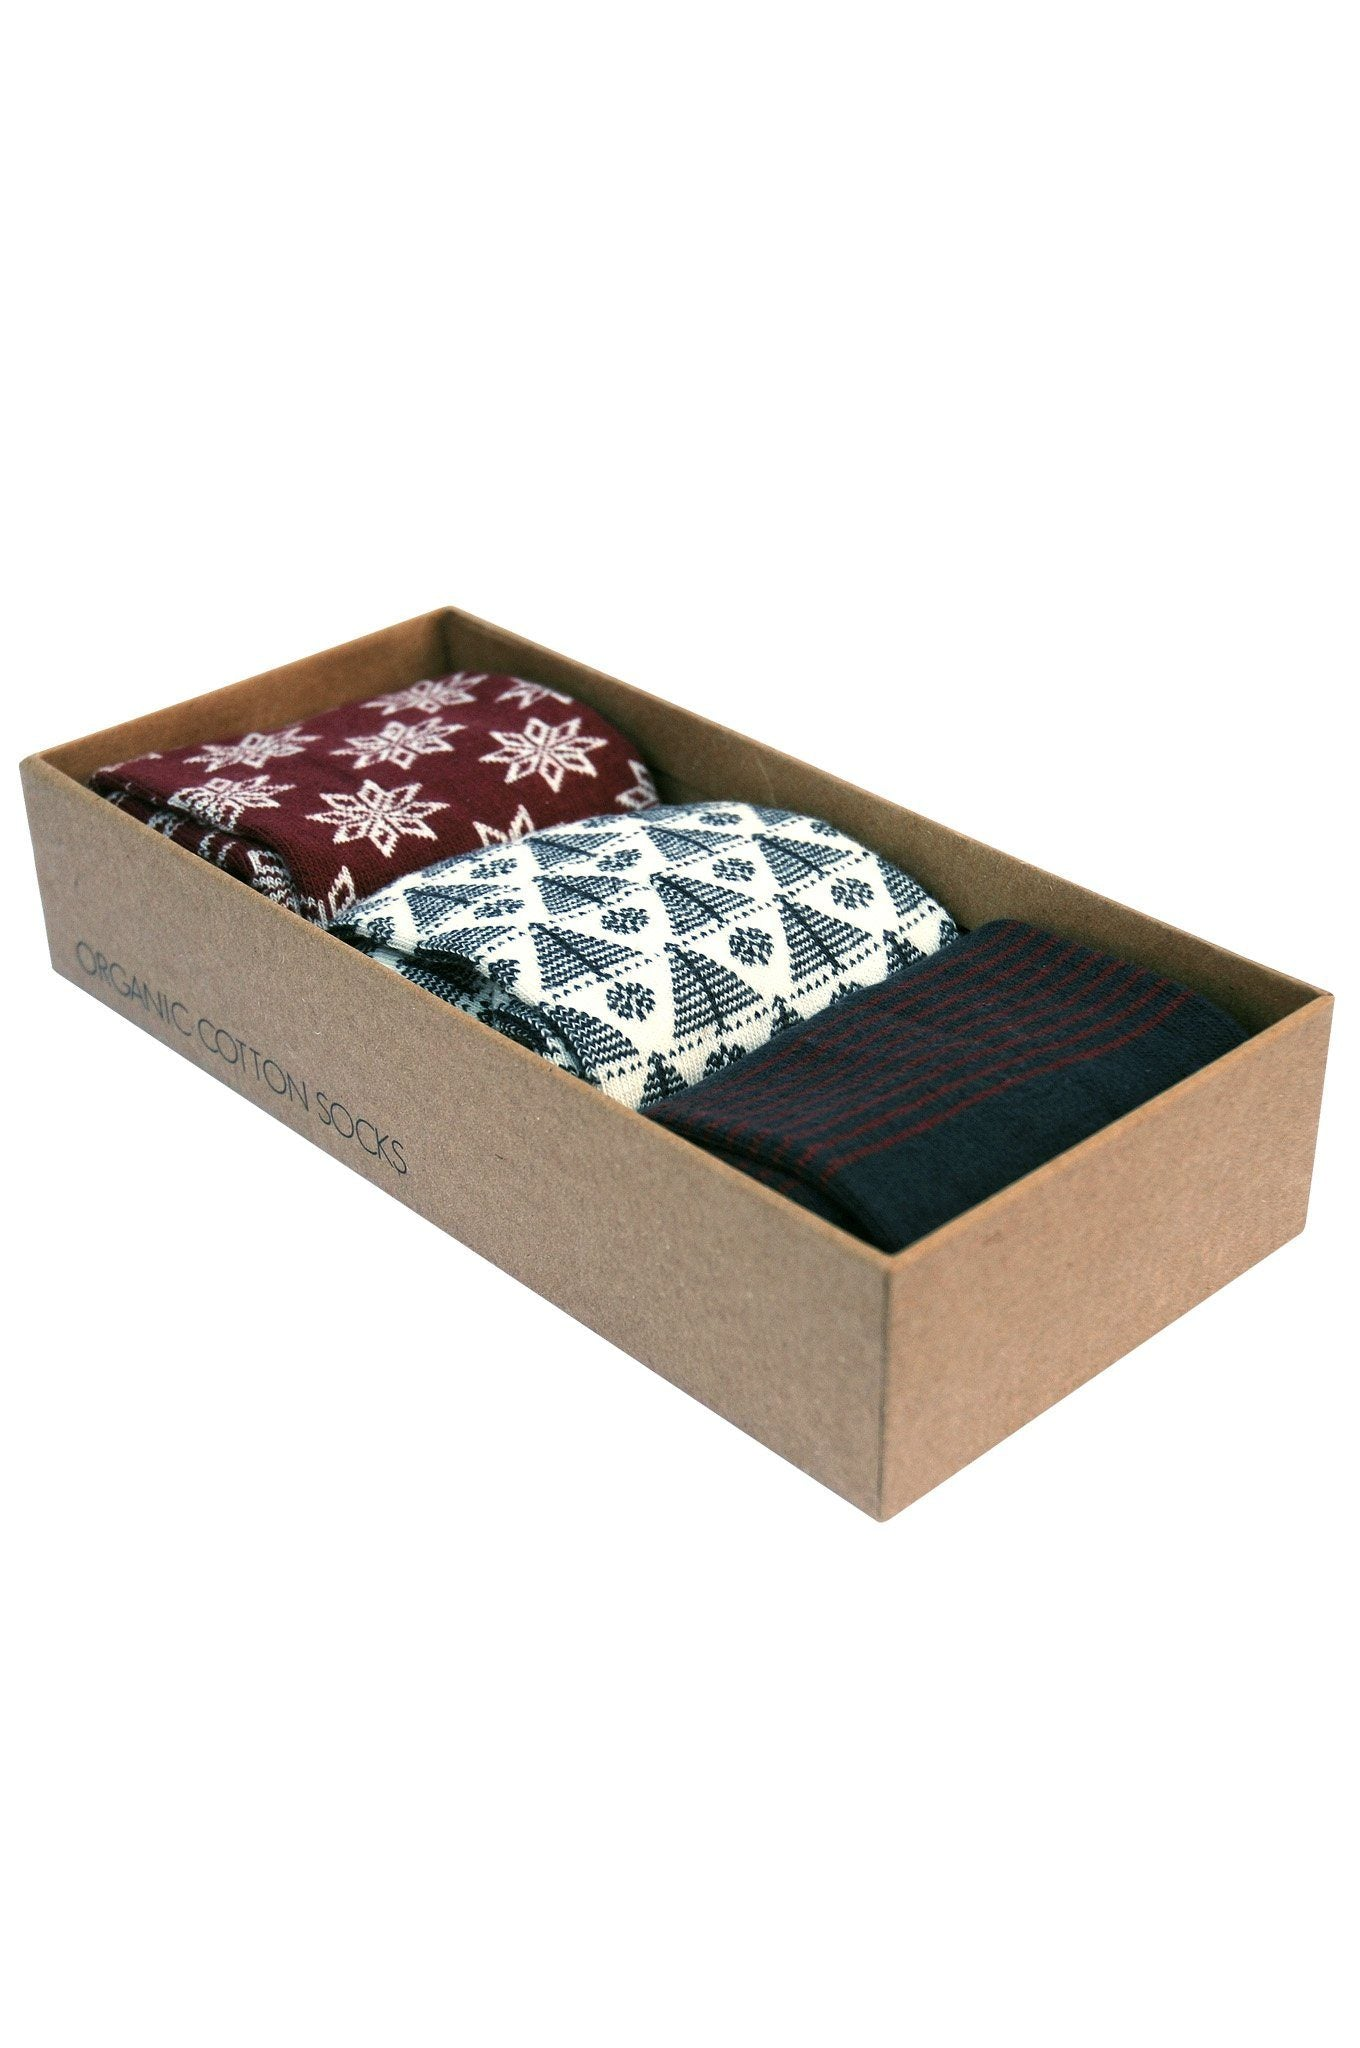 CHRISTMAS Box Assorted Organic Cotton Socks Set - Komodo Fashion